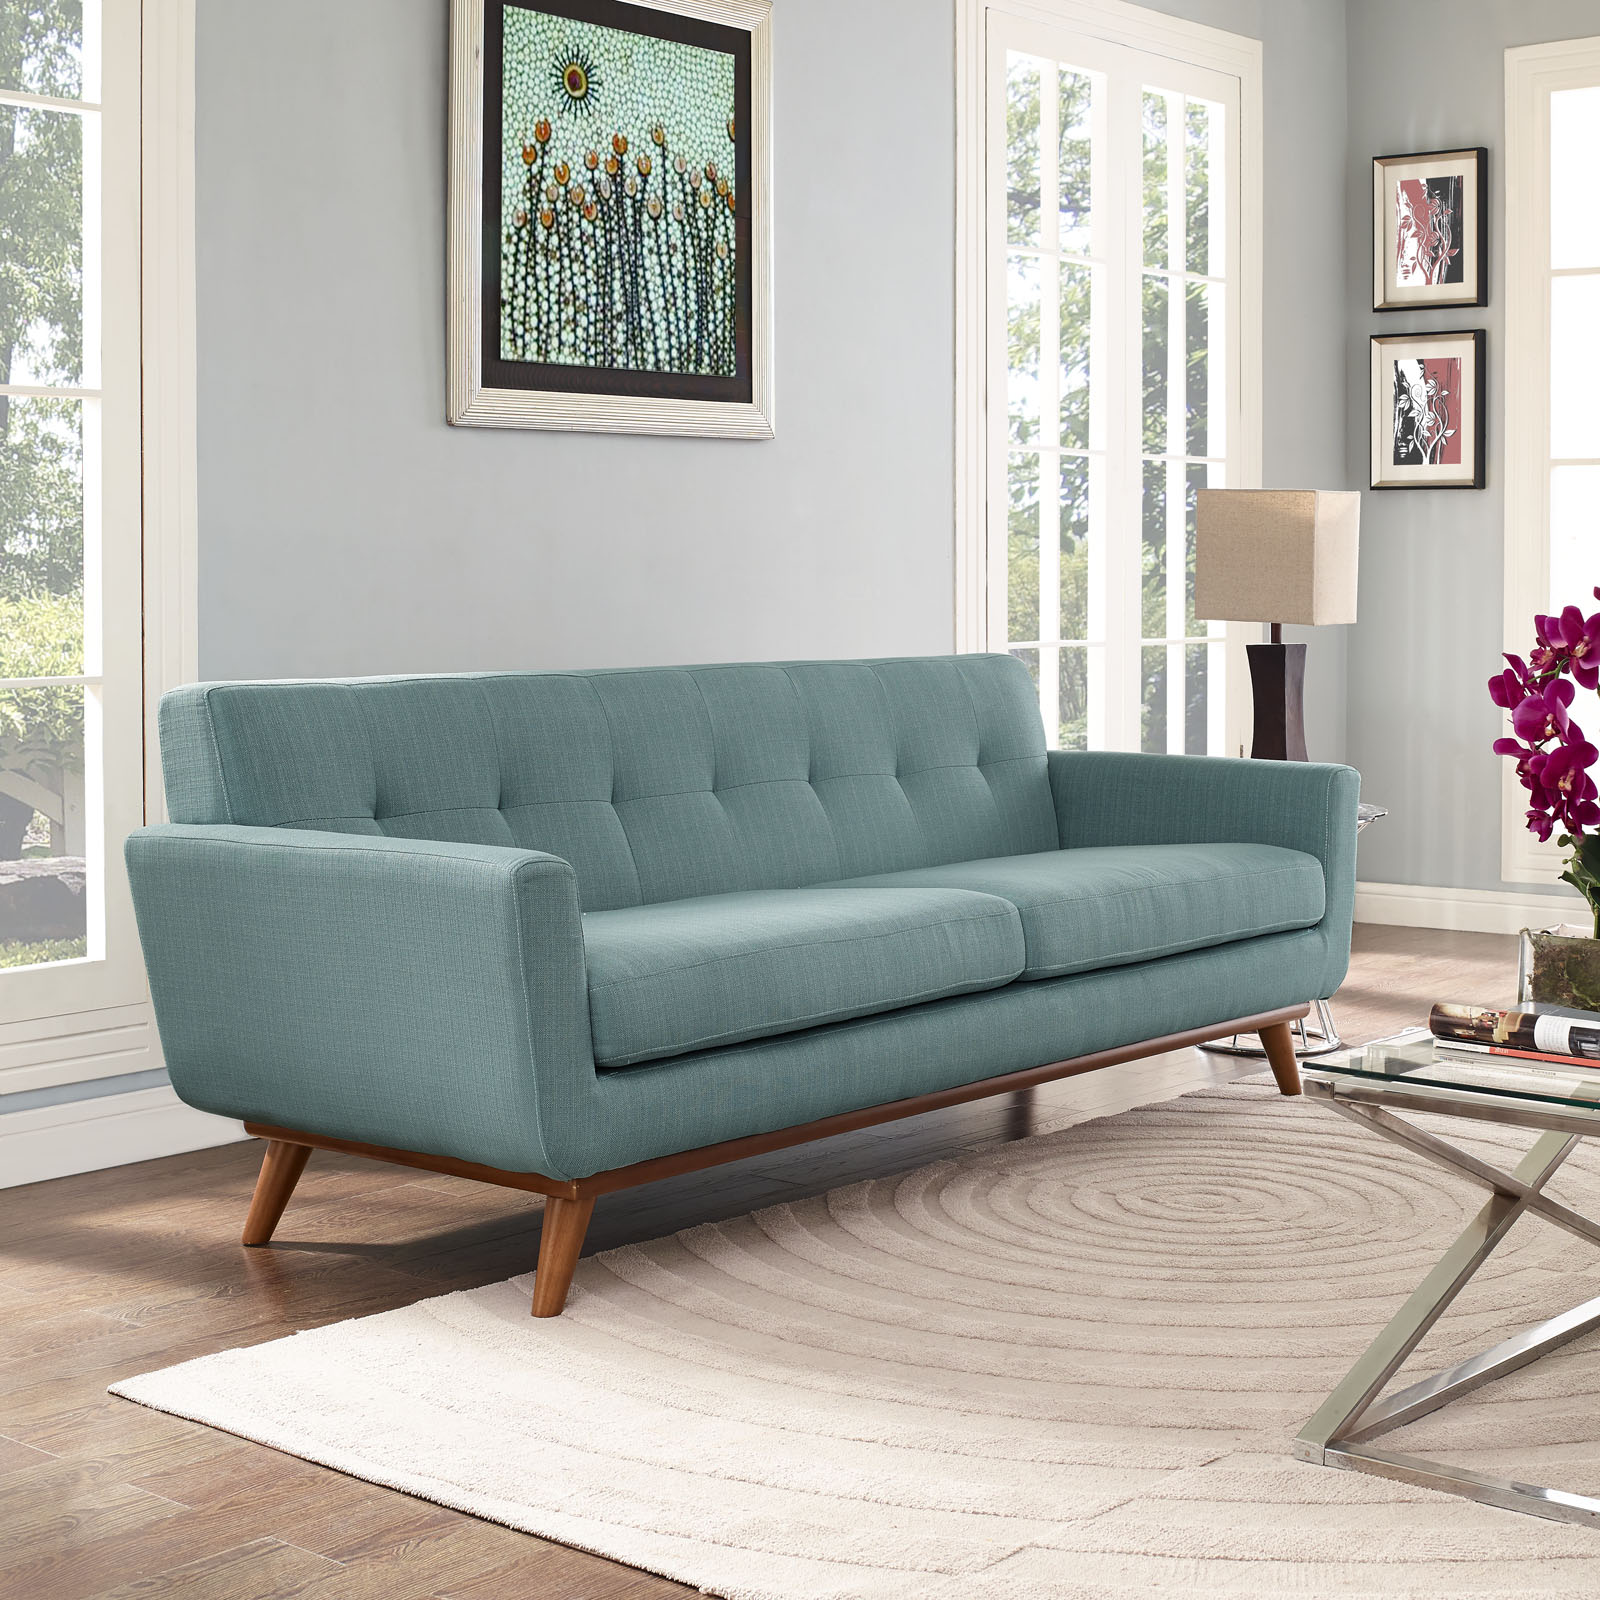 spiers sofa review mexico vs cuba sofascore modway engage upholstered tufted multiple colors walmart com